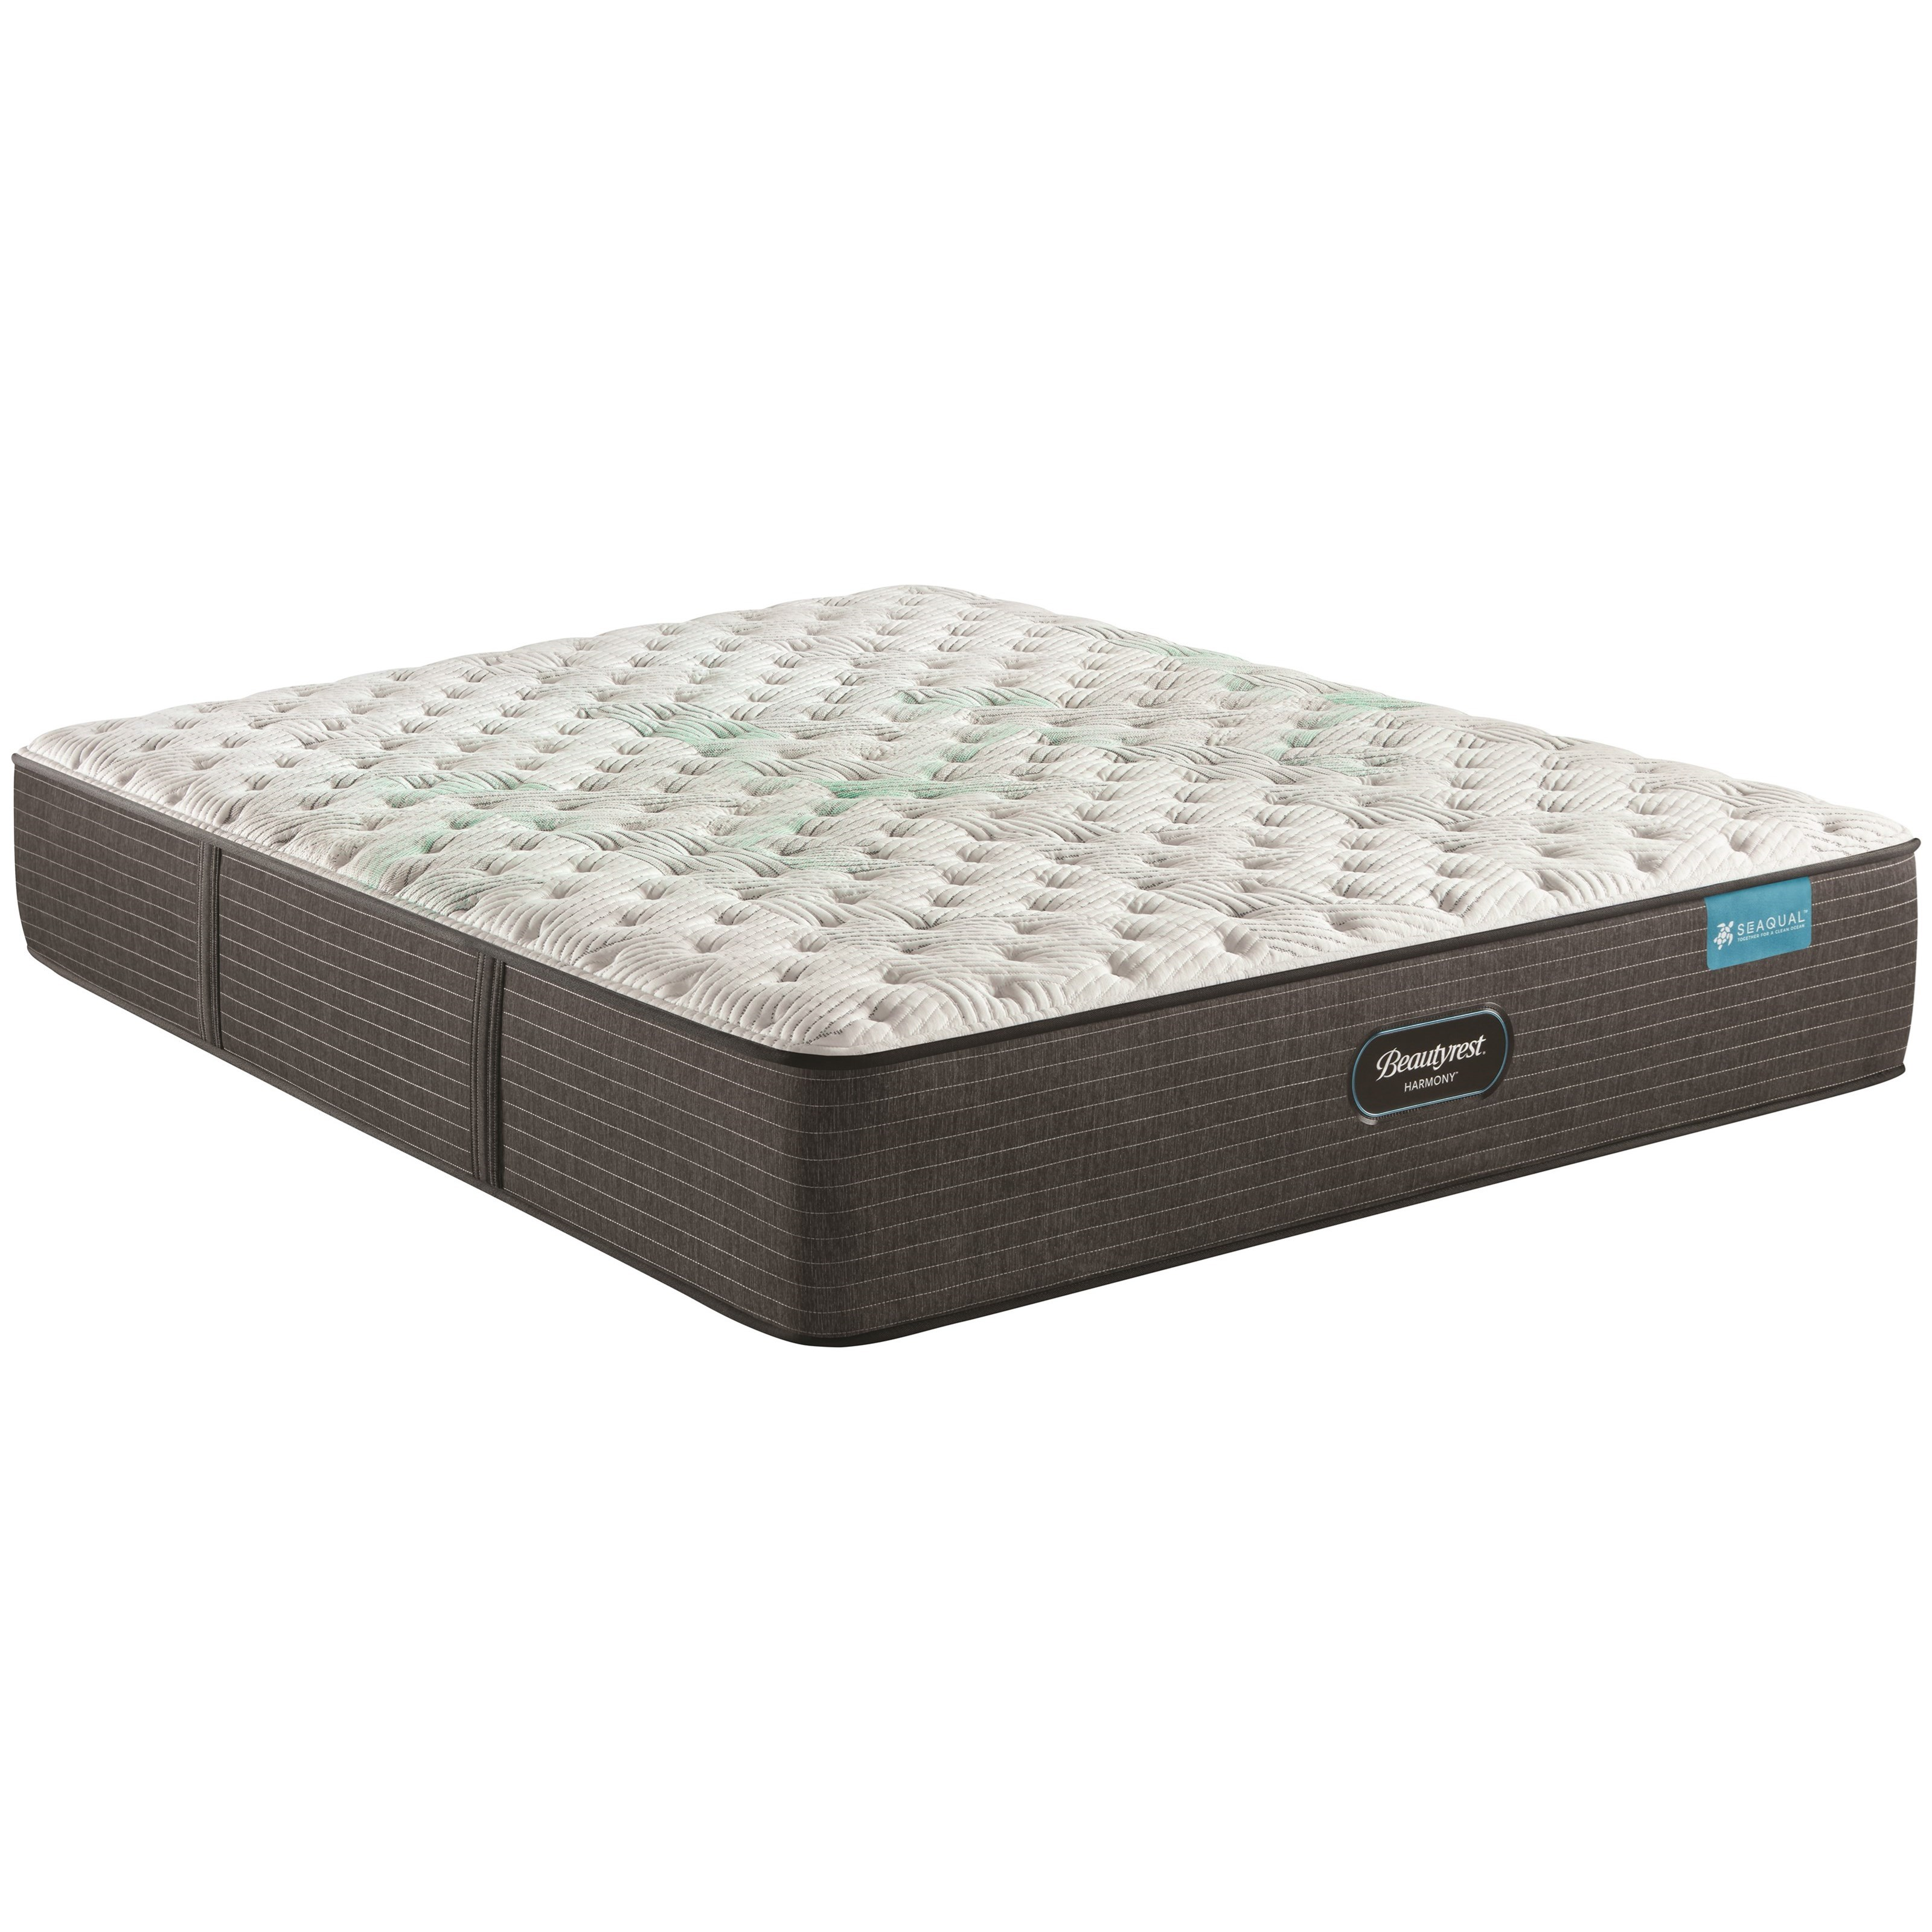 "Seaton Extra Firm TT Twin XL 13"" Extra Firm Mattress by Beautyrest at Morris Home"